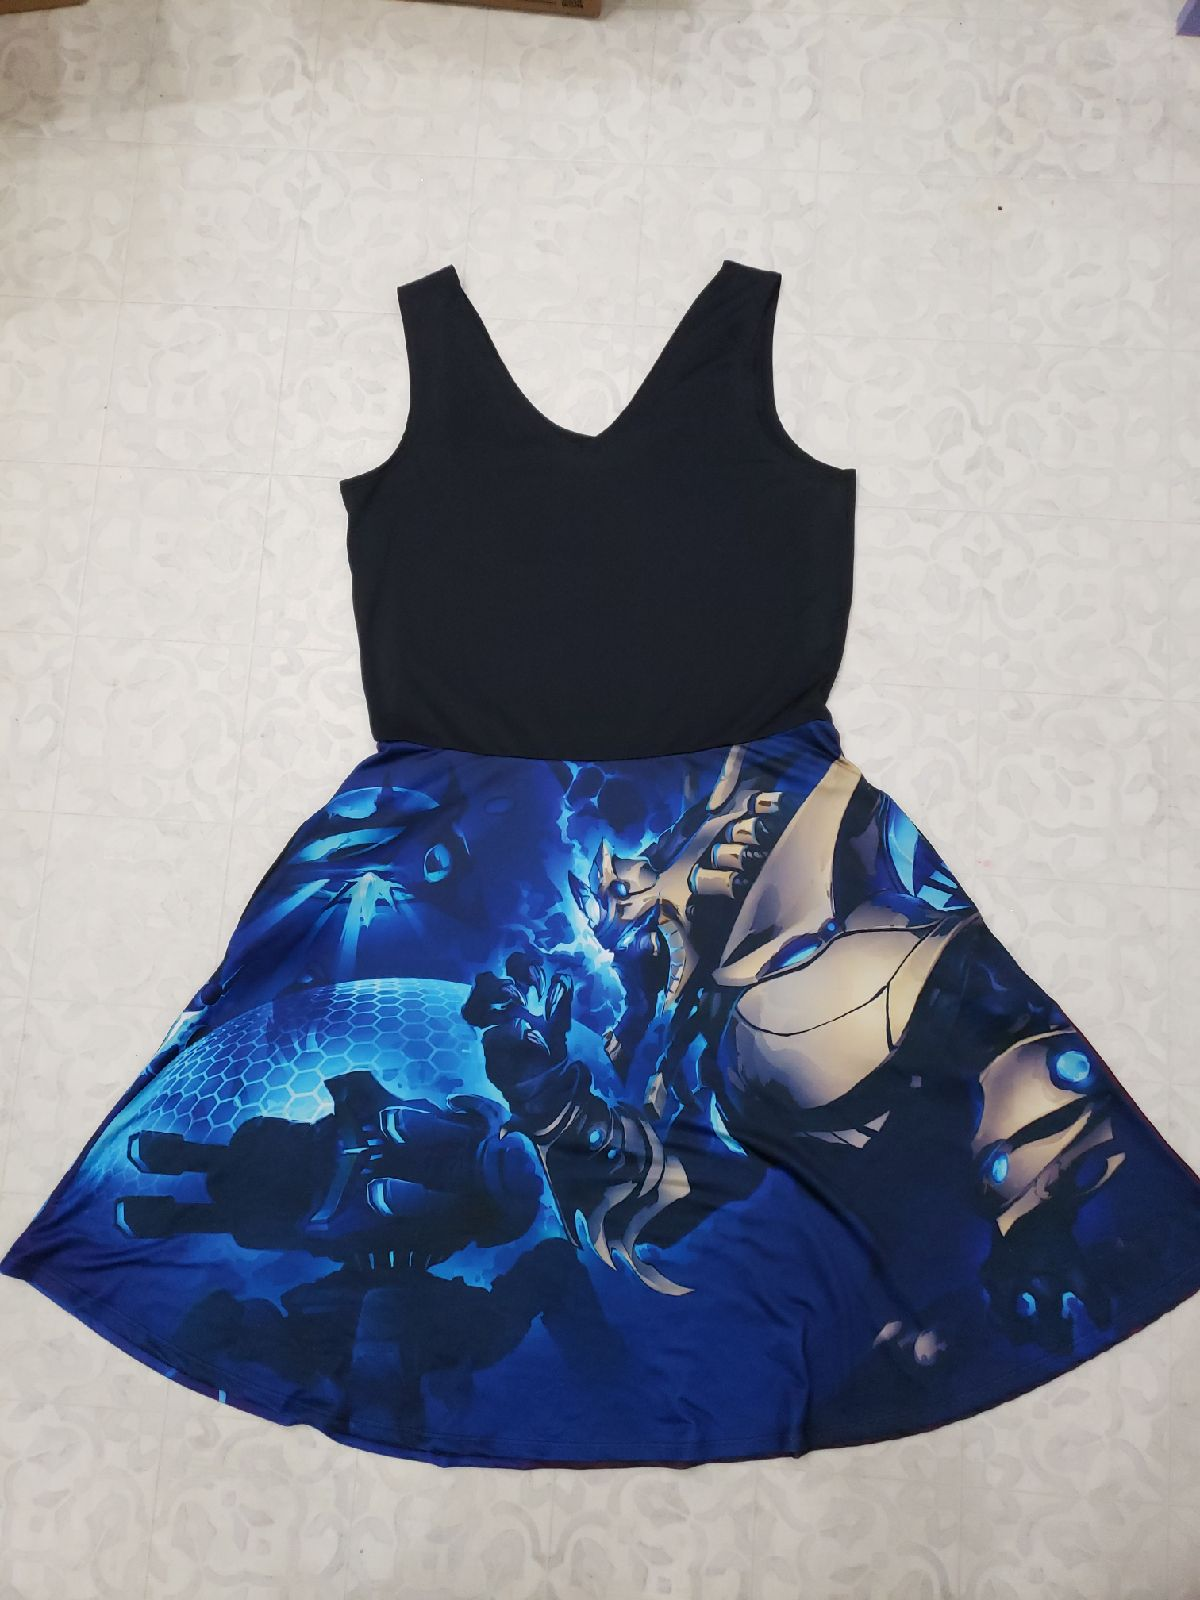 Reversible Starcraft II Dress Pockets!